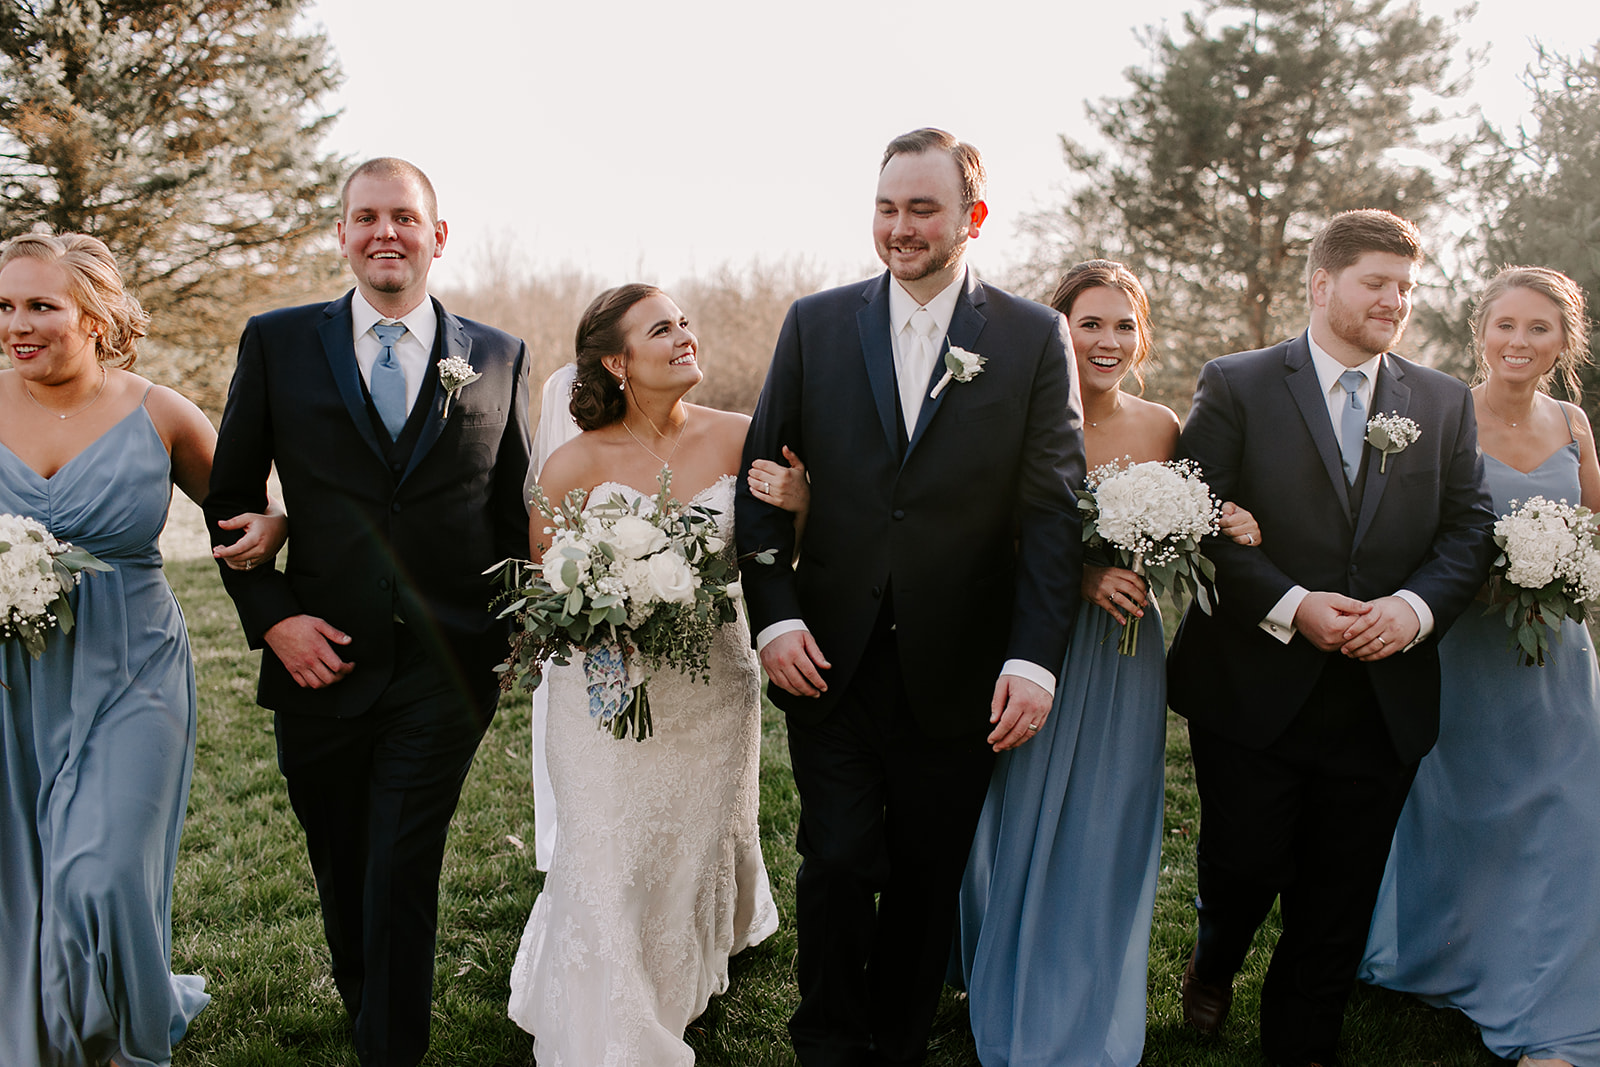 Lauren_and_Andrew_Mustard_Seed_Gardens_Noblesville_Indiana_by_Emily_Wehner_Photography-664.jpg